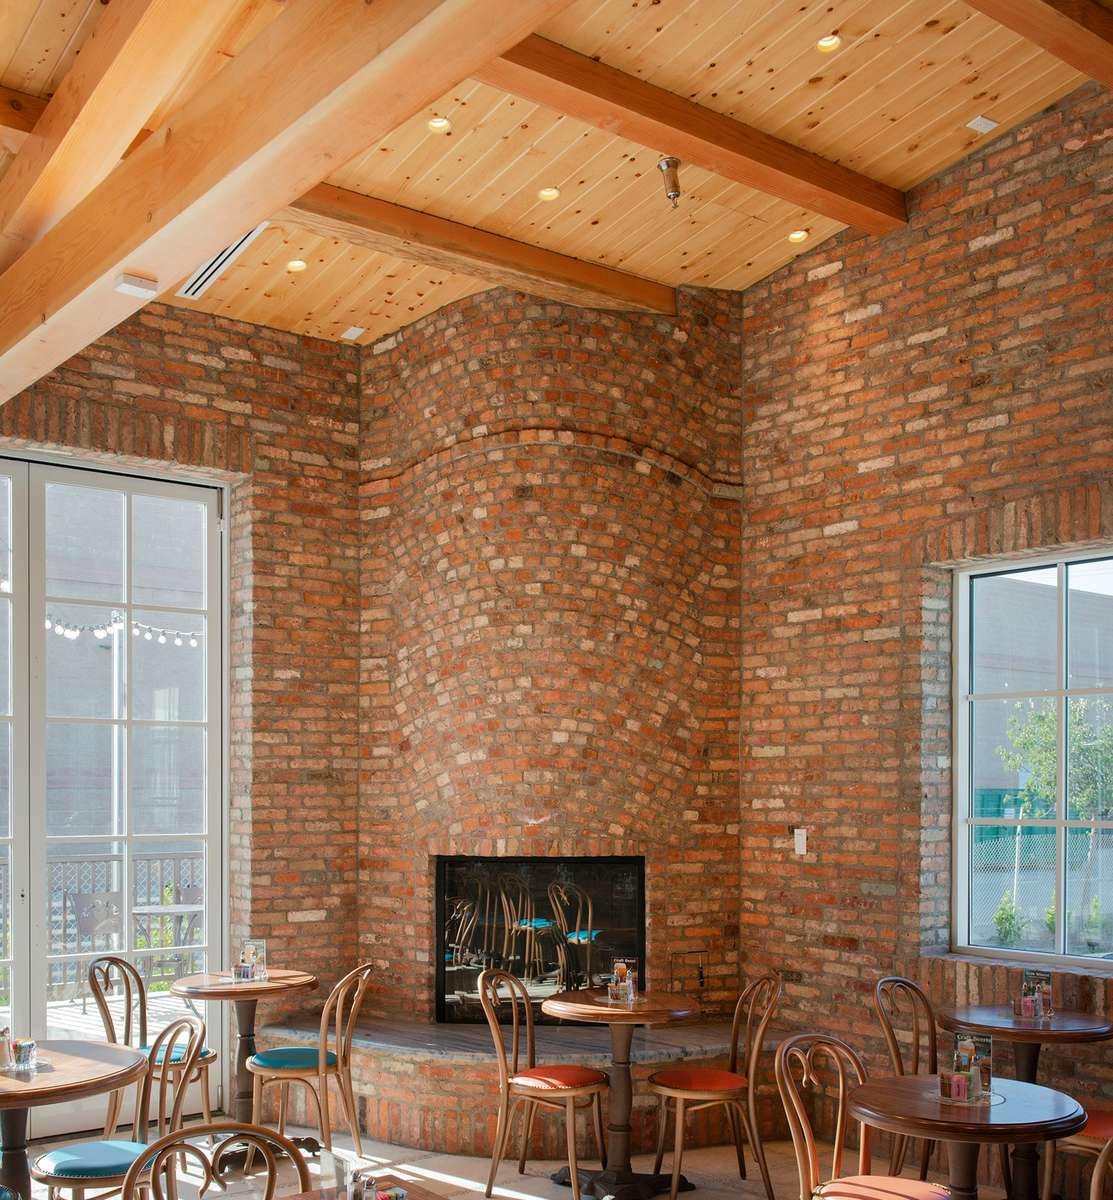 Rounded fireplace of reclaimed brick in corner of room with high ceilings and large windows.